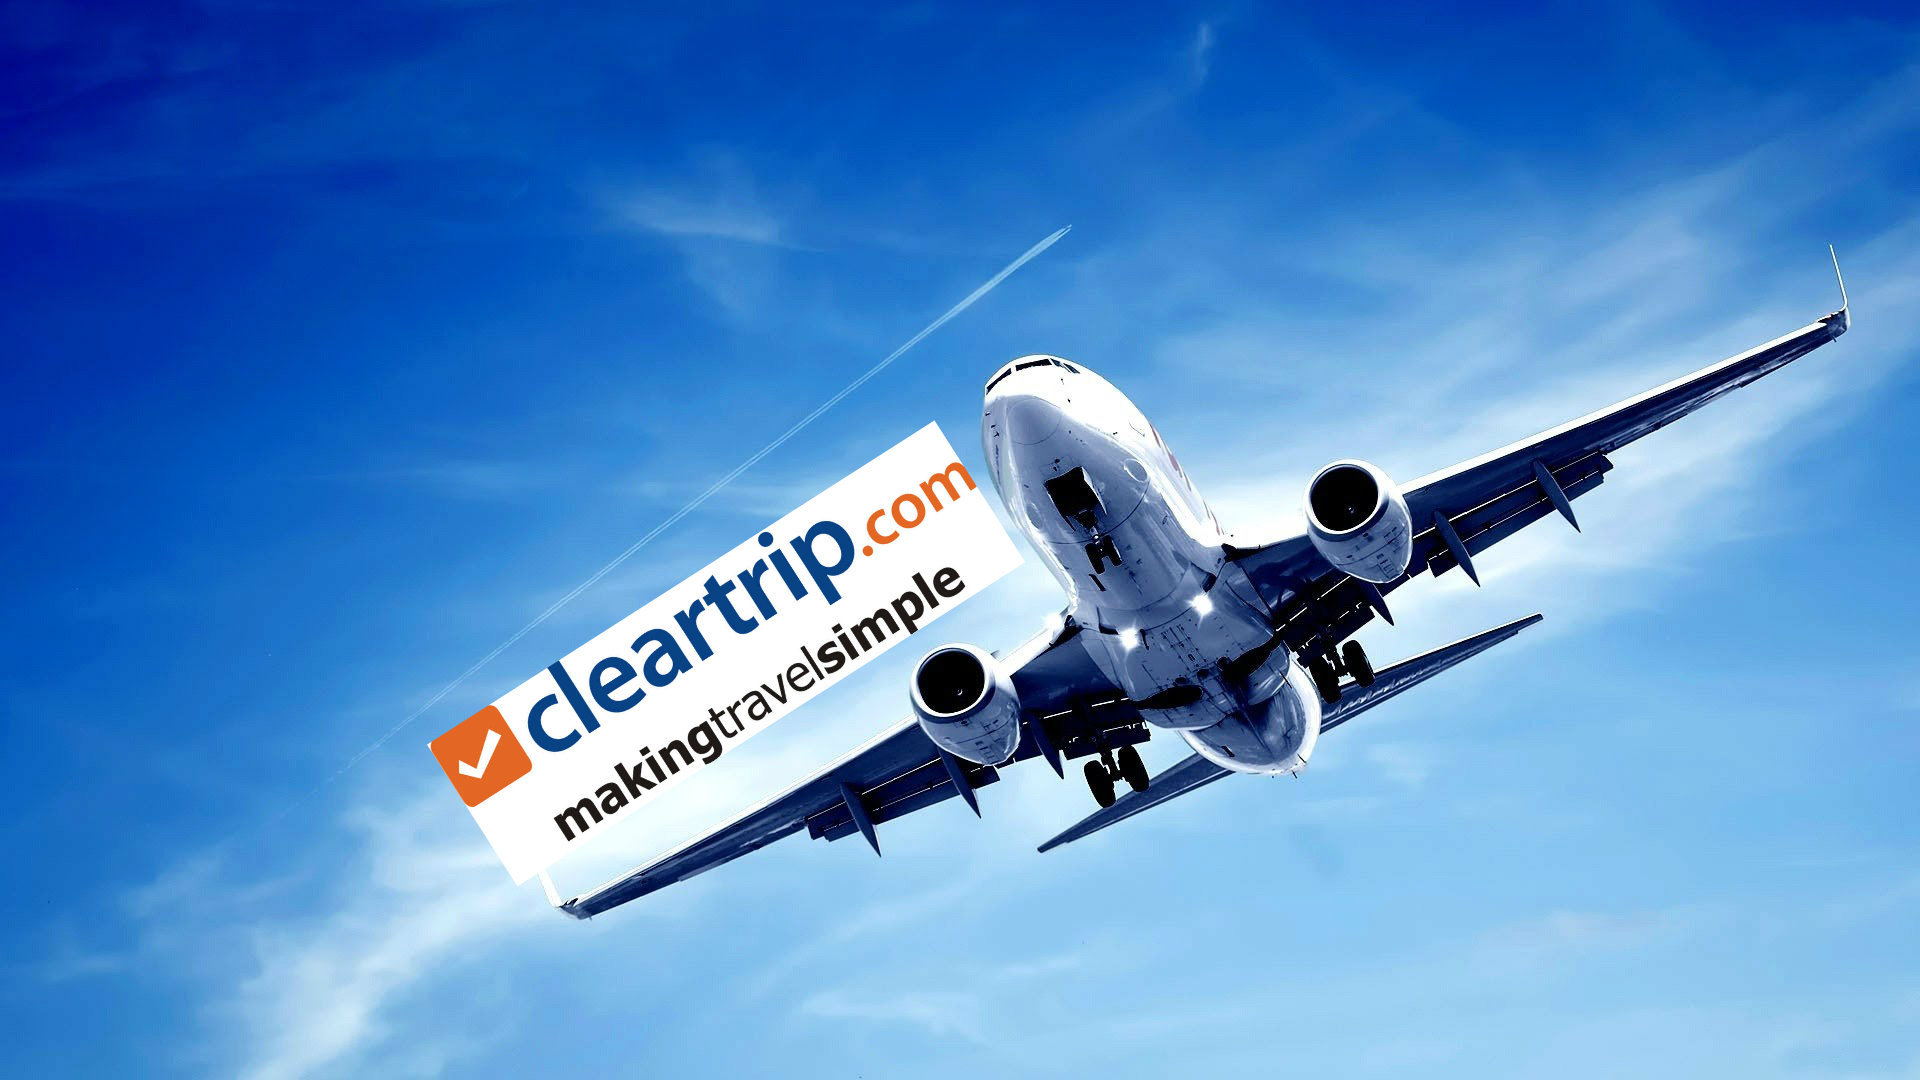 Cleartrip is an online travel organization based in India. It is one of the best travel website operator and airline tickets provider for both Domestic and International Flights.